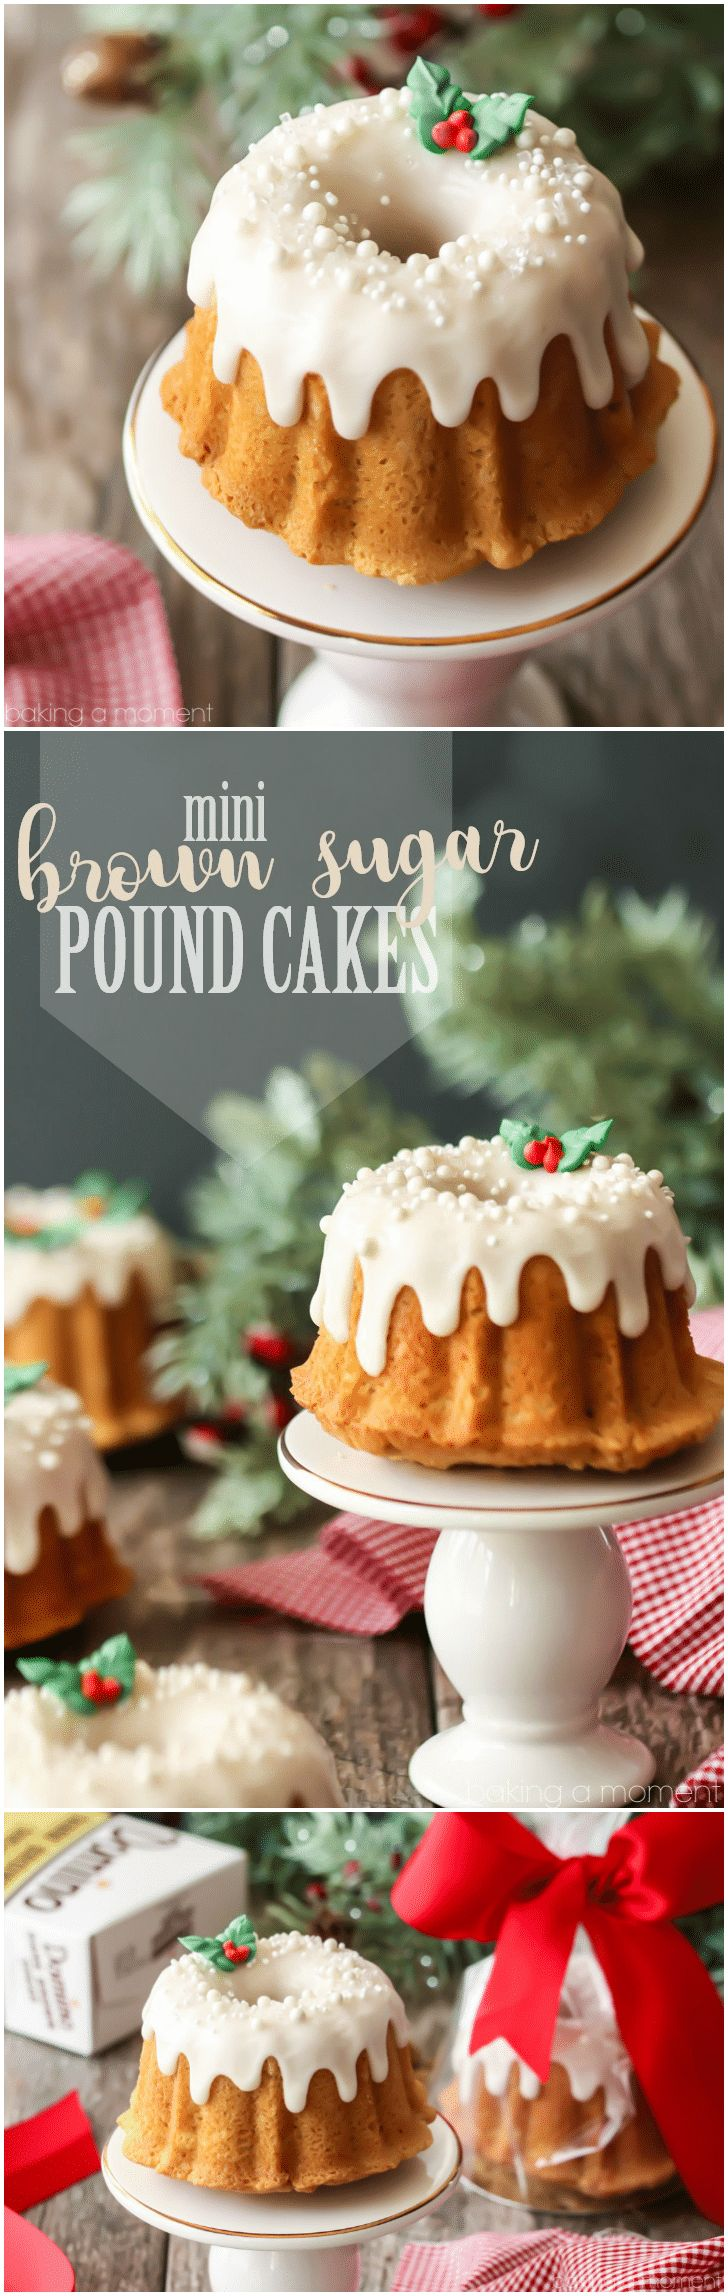 Mini Brown Sugar Pound Cakes